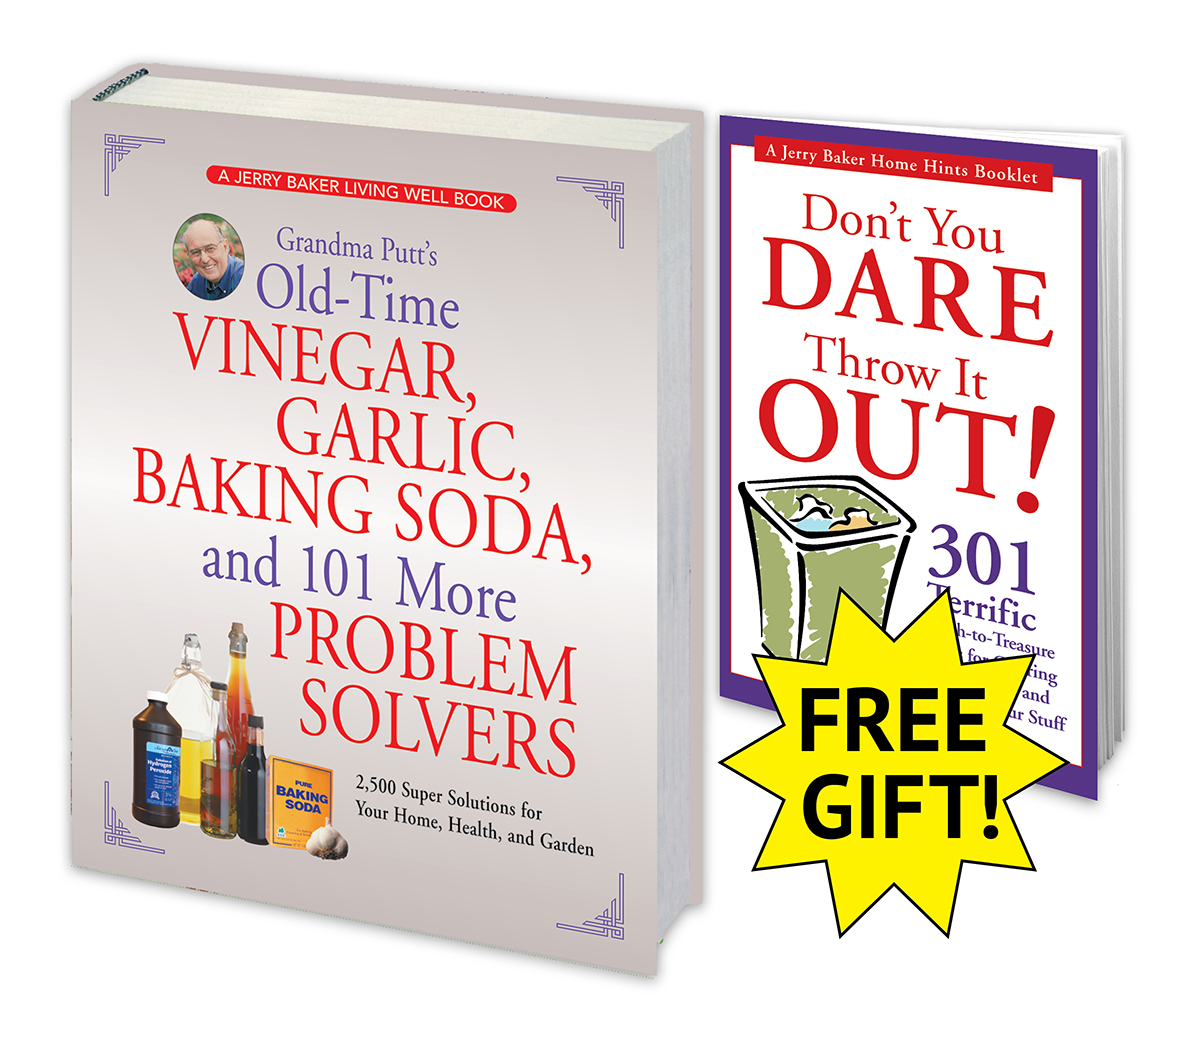 Grandma Putt's Vinegar, Garlic and Baking Soda